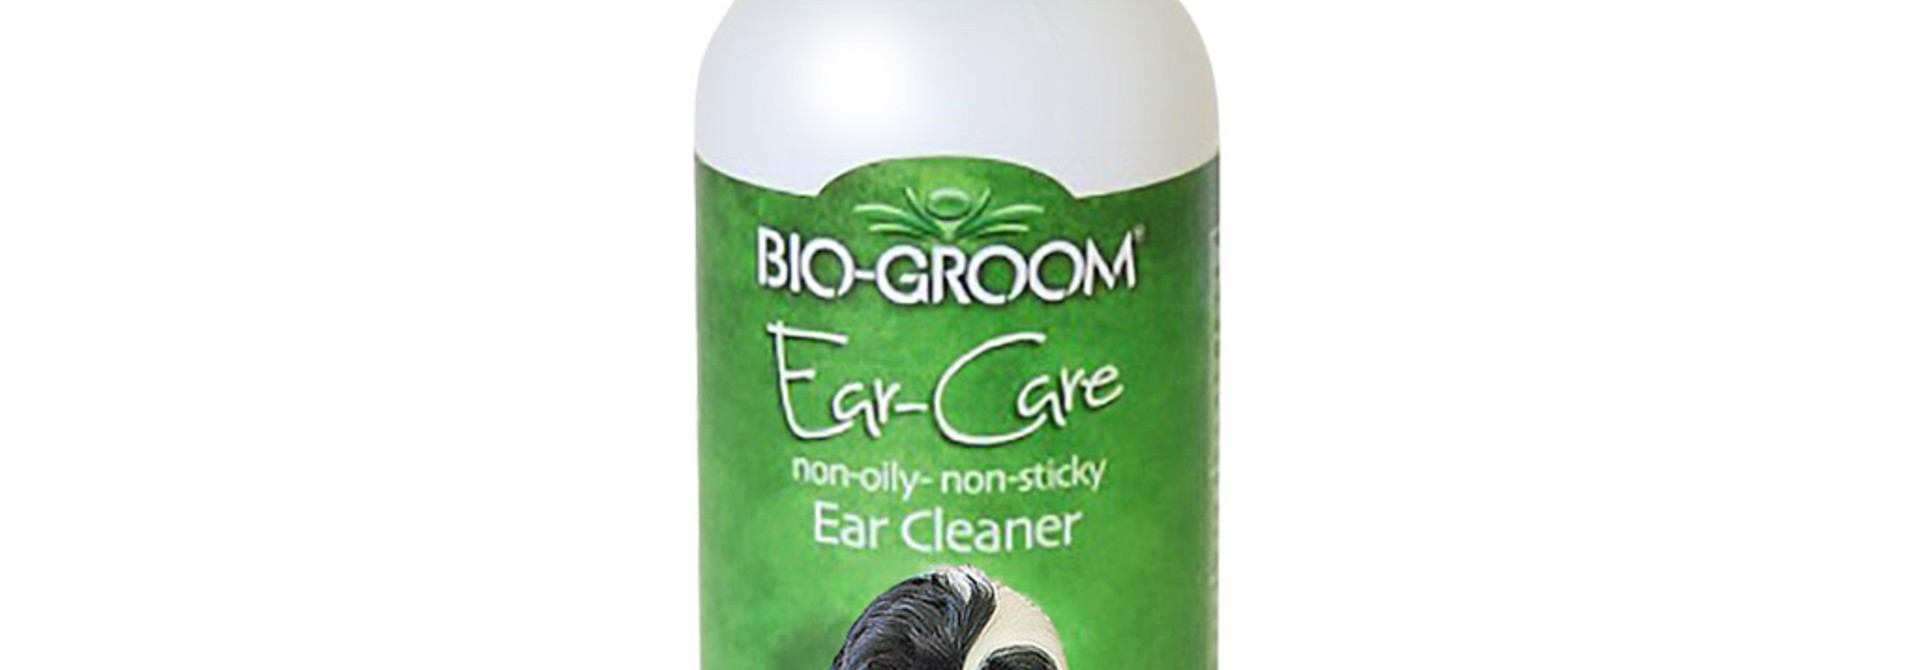 Ear Care Ear Cleaner 4OZ